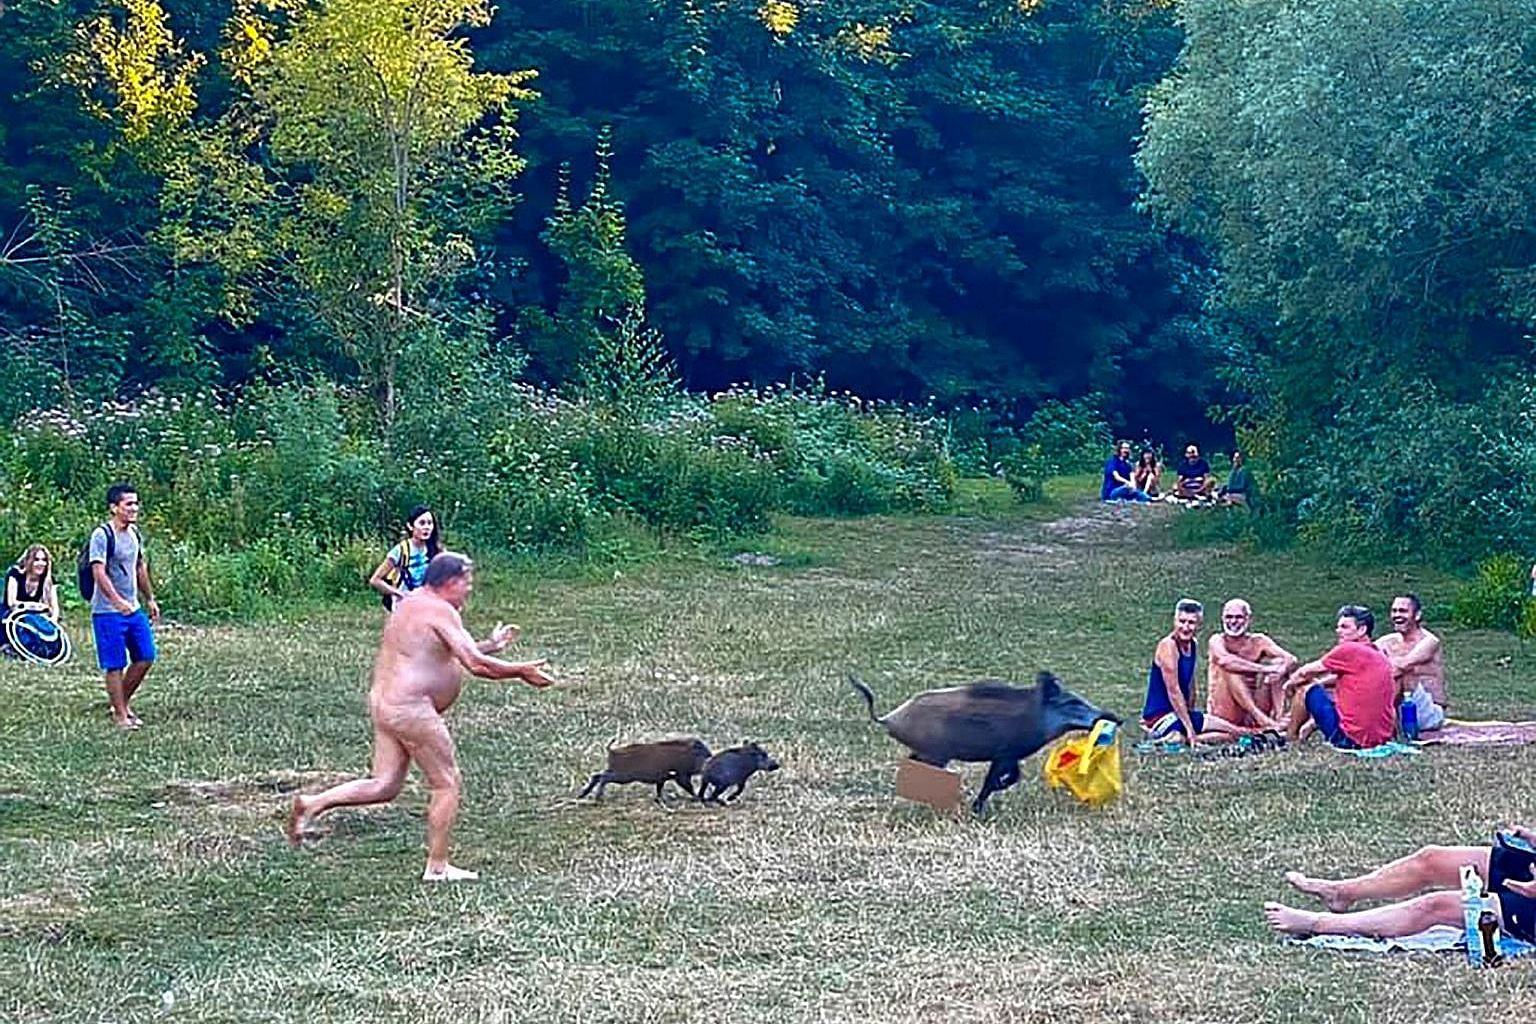 The man chasing the boar, which ran off with a bag containing his laptop while he was sunbathing at Teufelssee lake in Berlin.